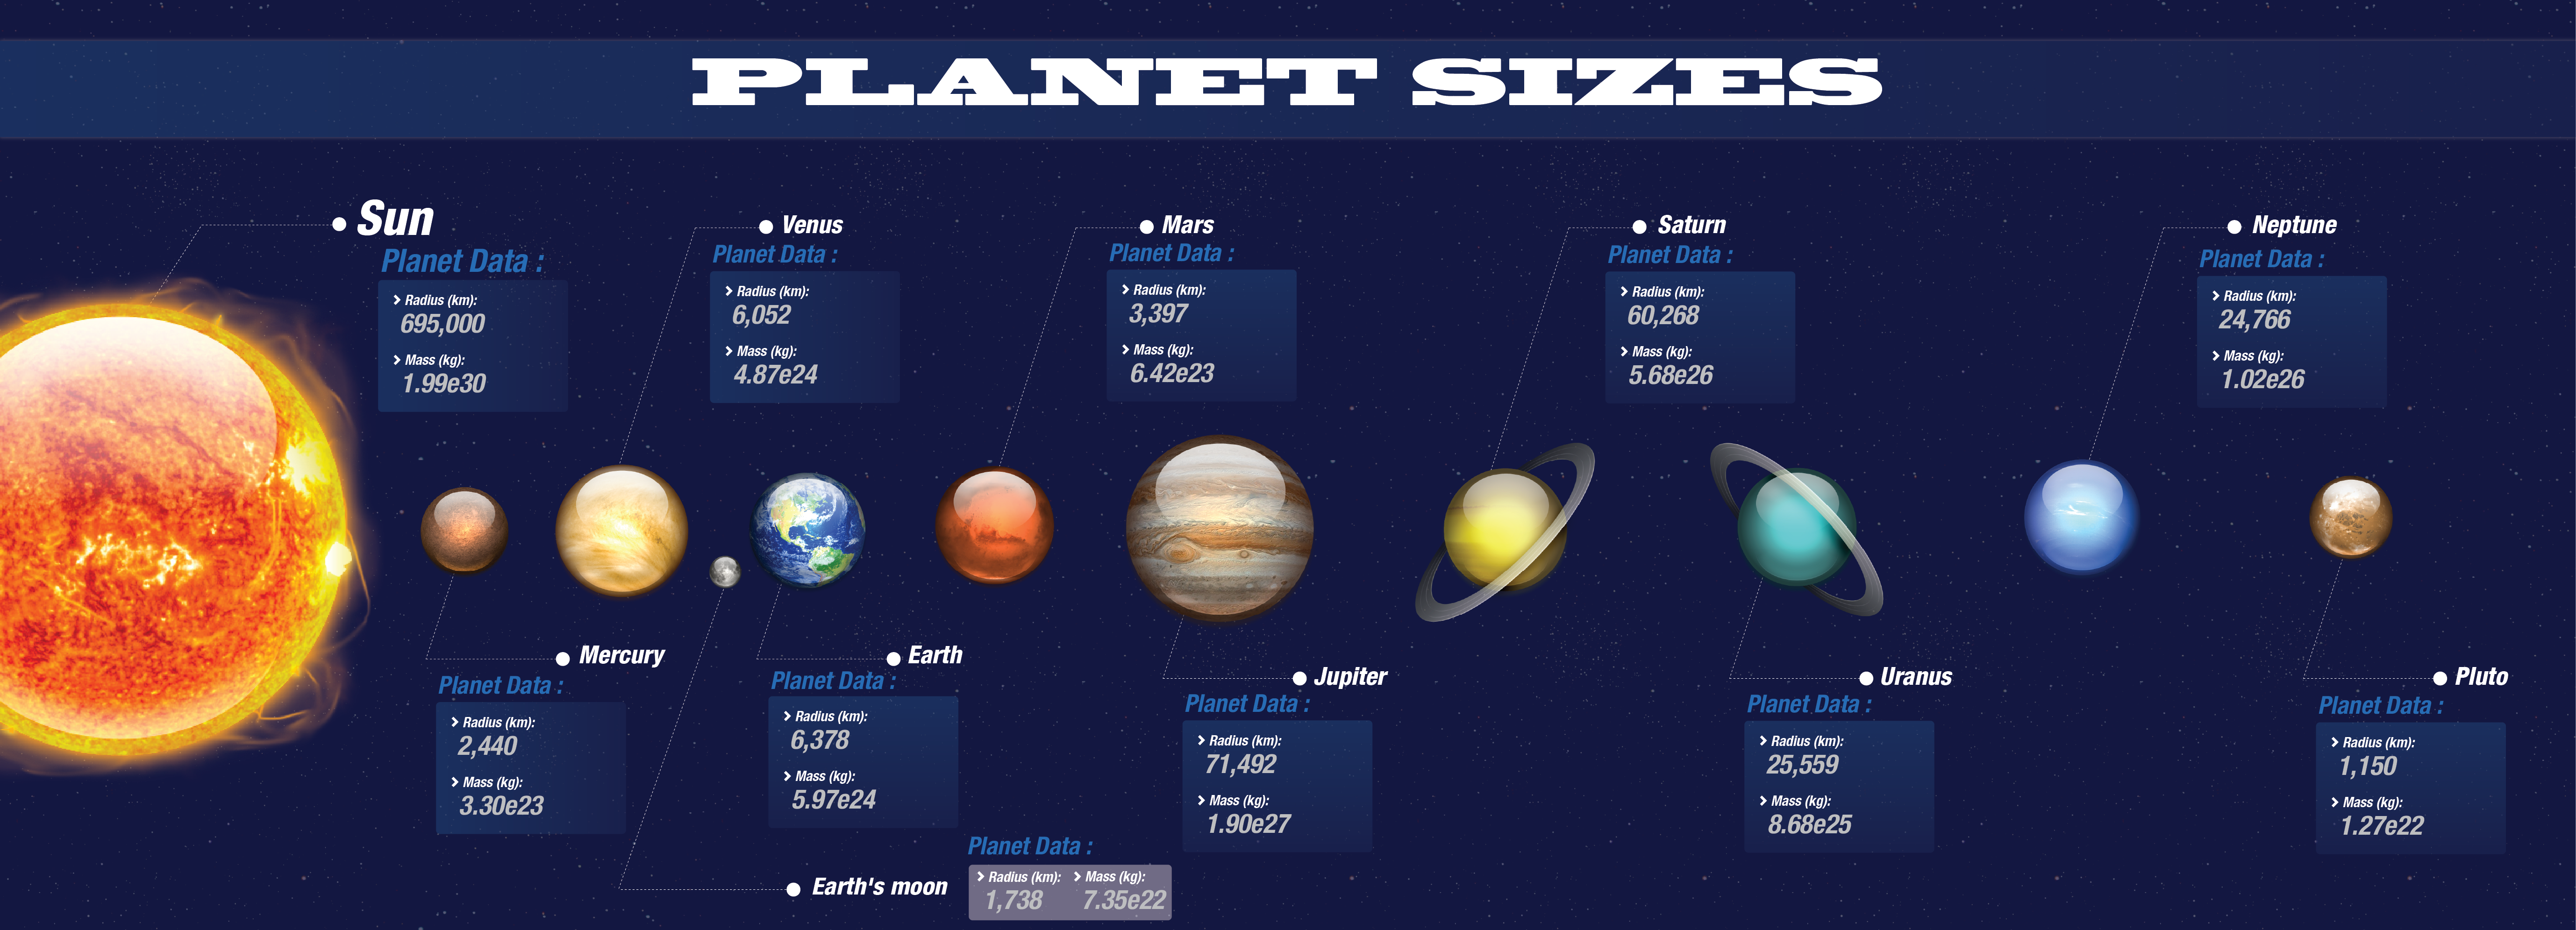 solar system order of planets - photo #12